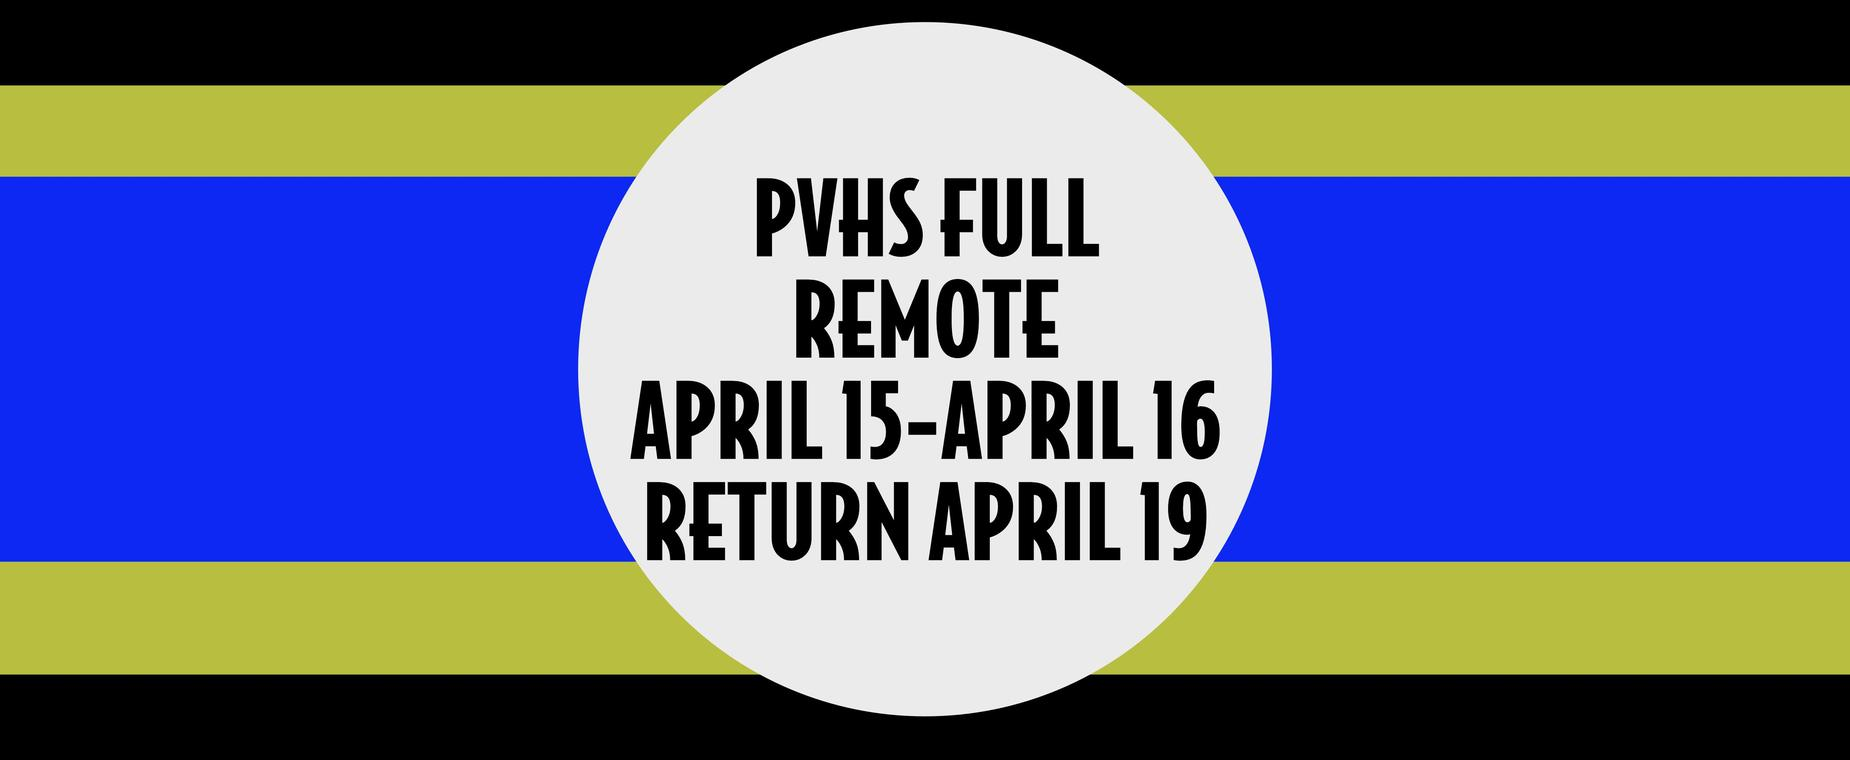 PVHS Fully Remote April 15 and 16